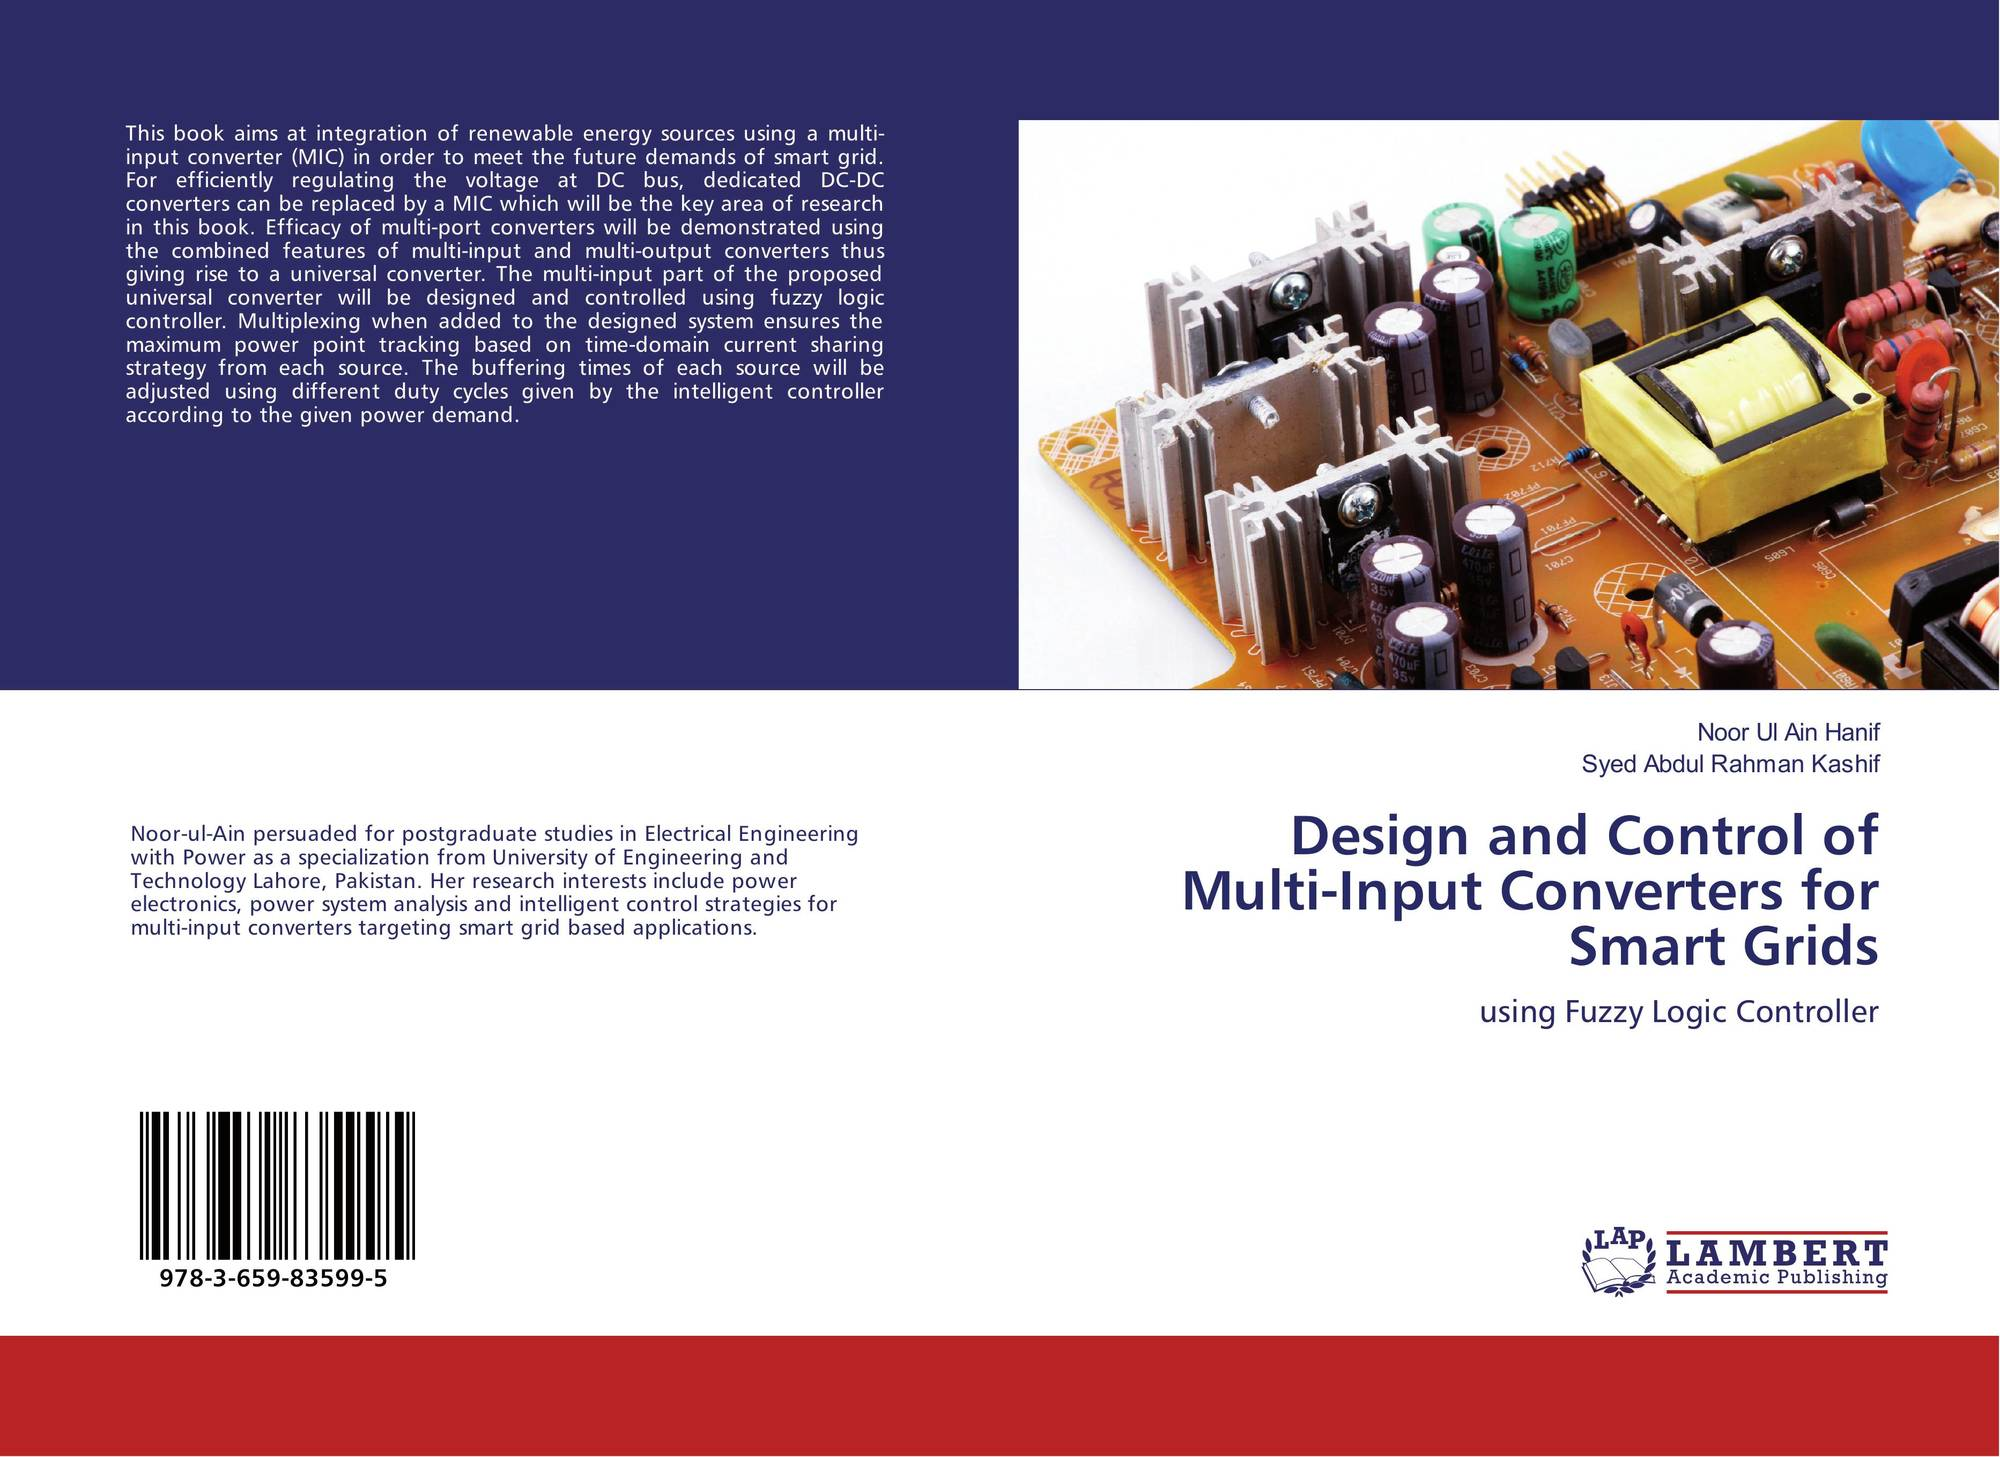 fuzzy logic technique in smart grid Additionally, effective uses of computational intelligence techniques such as fuzzy systems for the controlling and modeling of renewable power generation in a smart-grid system turn out to be very crucial for successful operations of the systems.